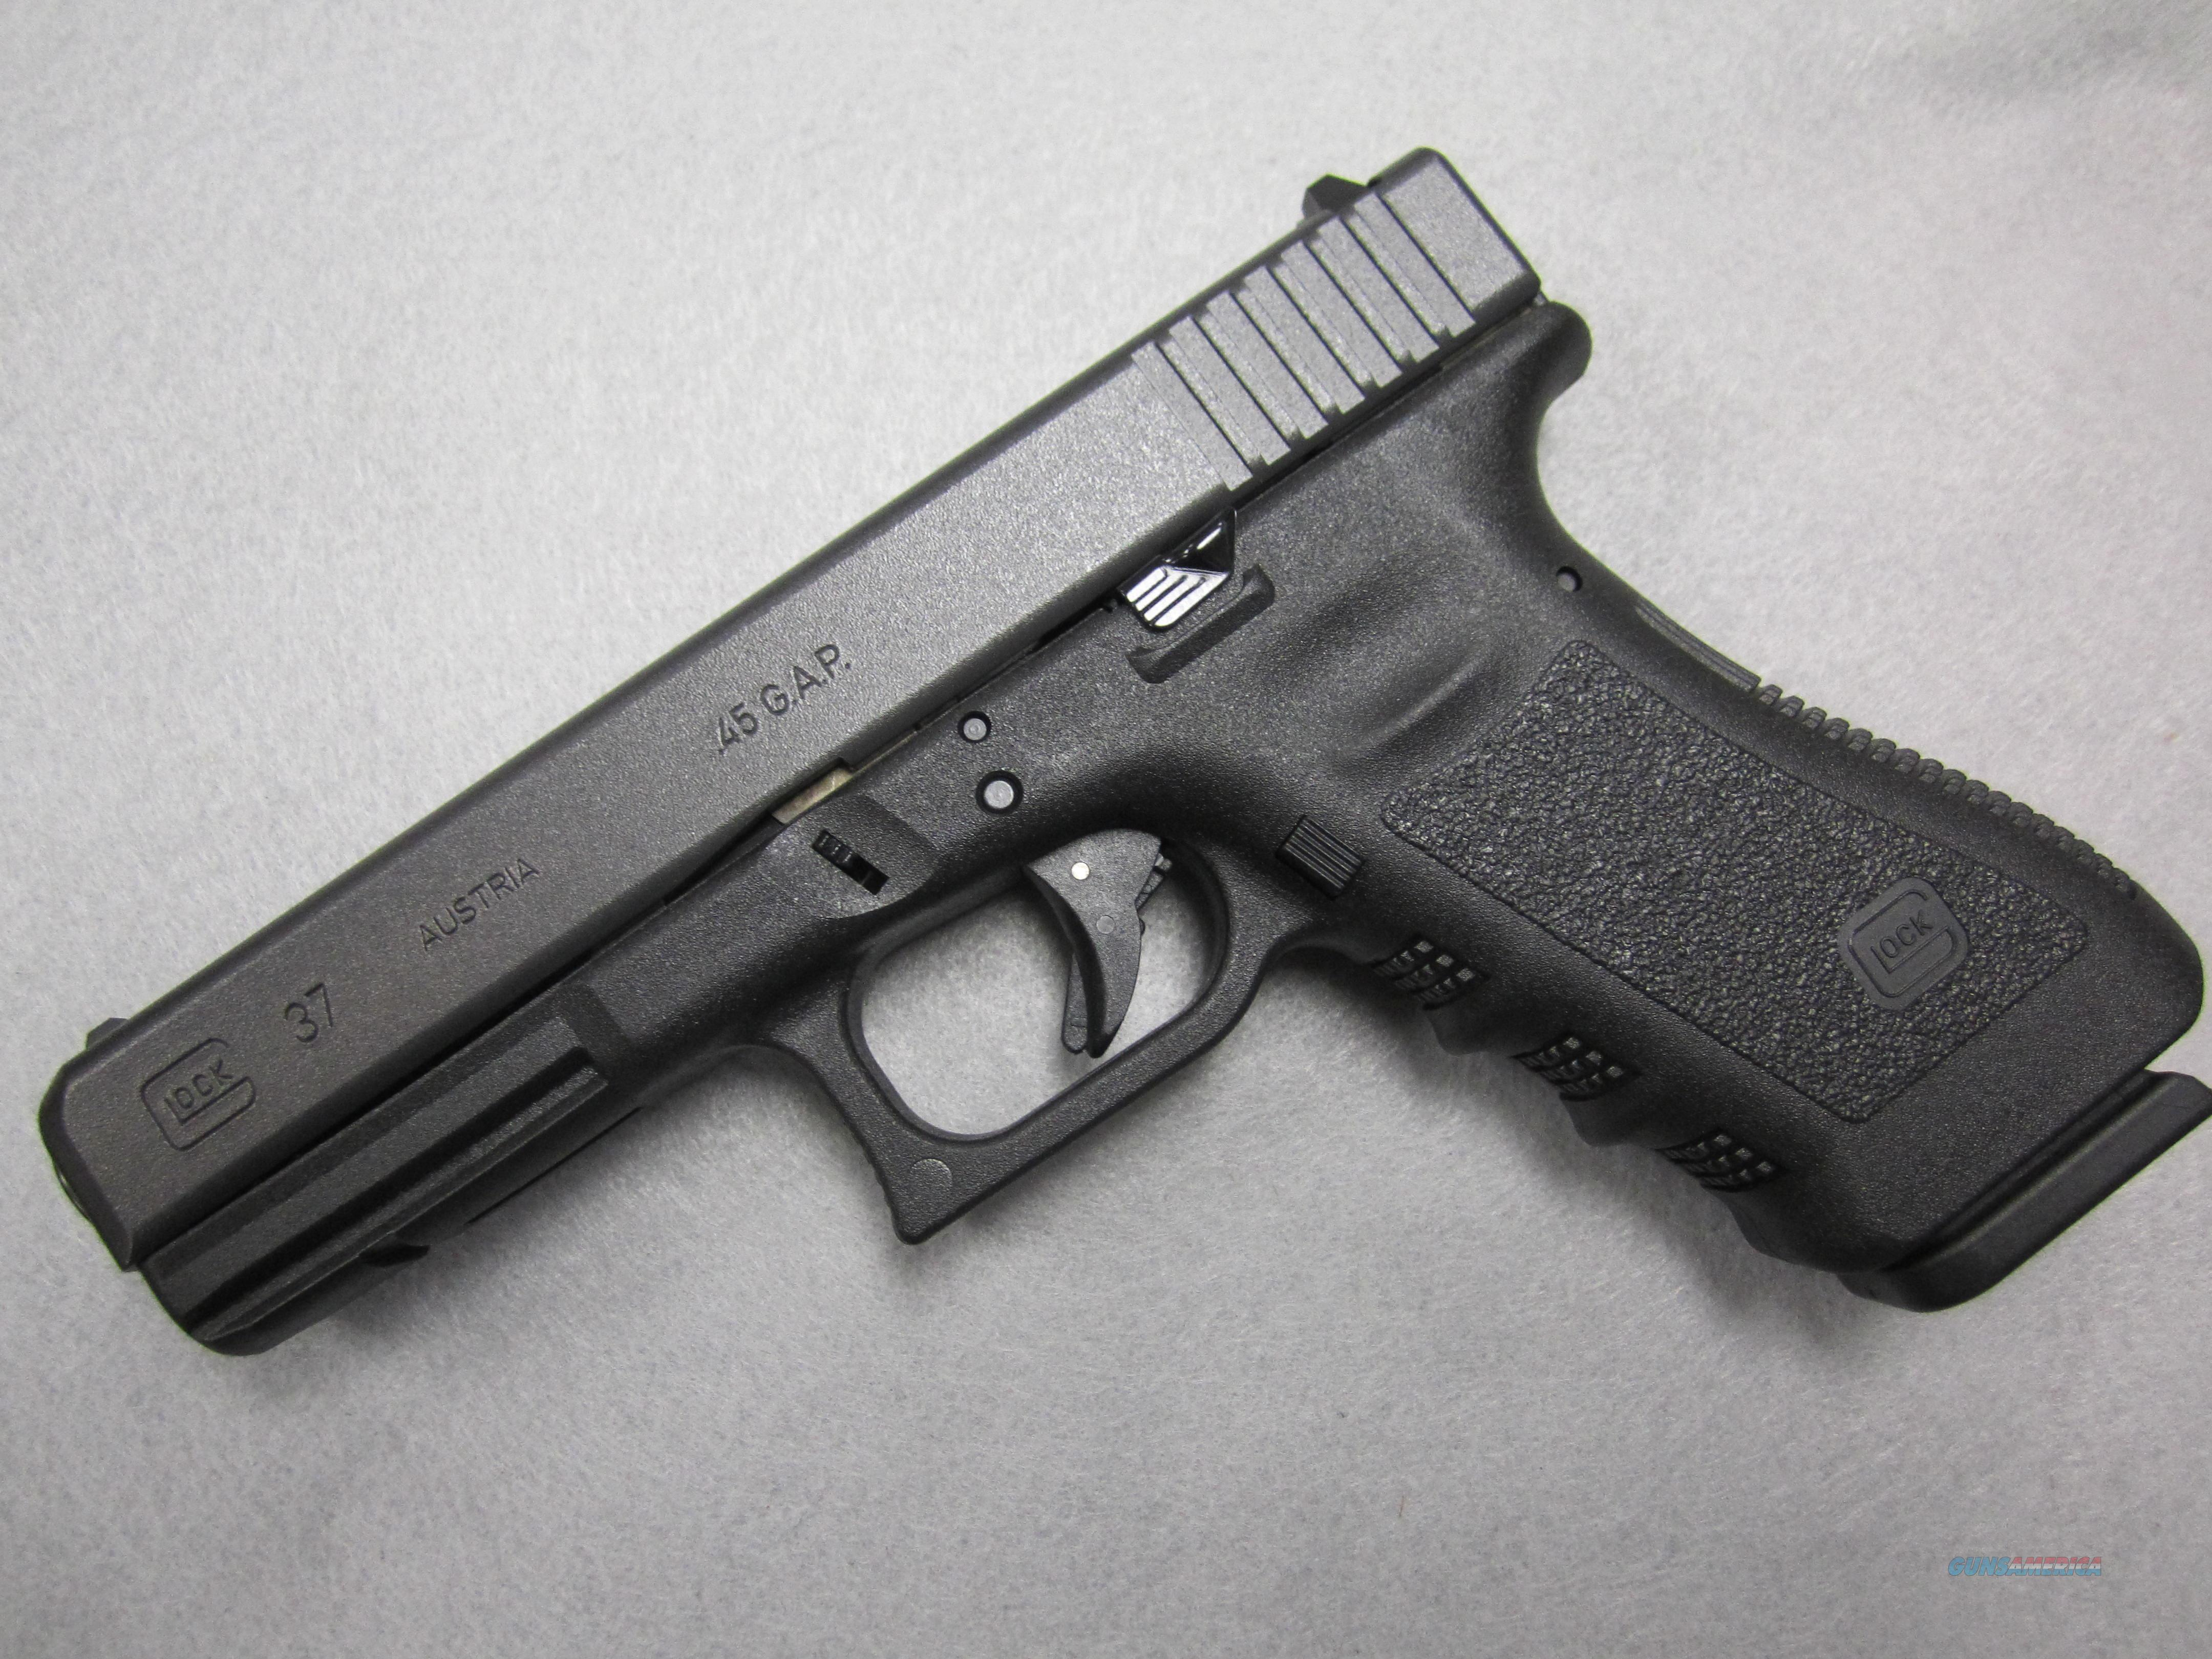 Glock 37 Gen 3  in .45 GAP. Never fired!  Guns > Pistols > Glock Pistols > 37